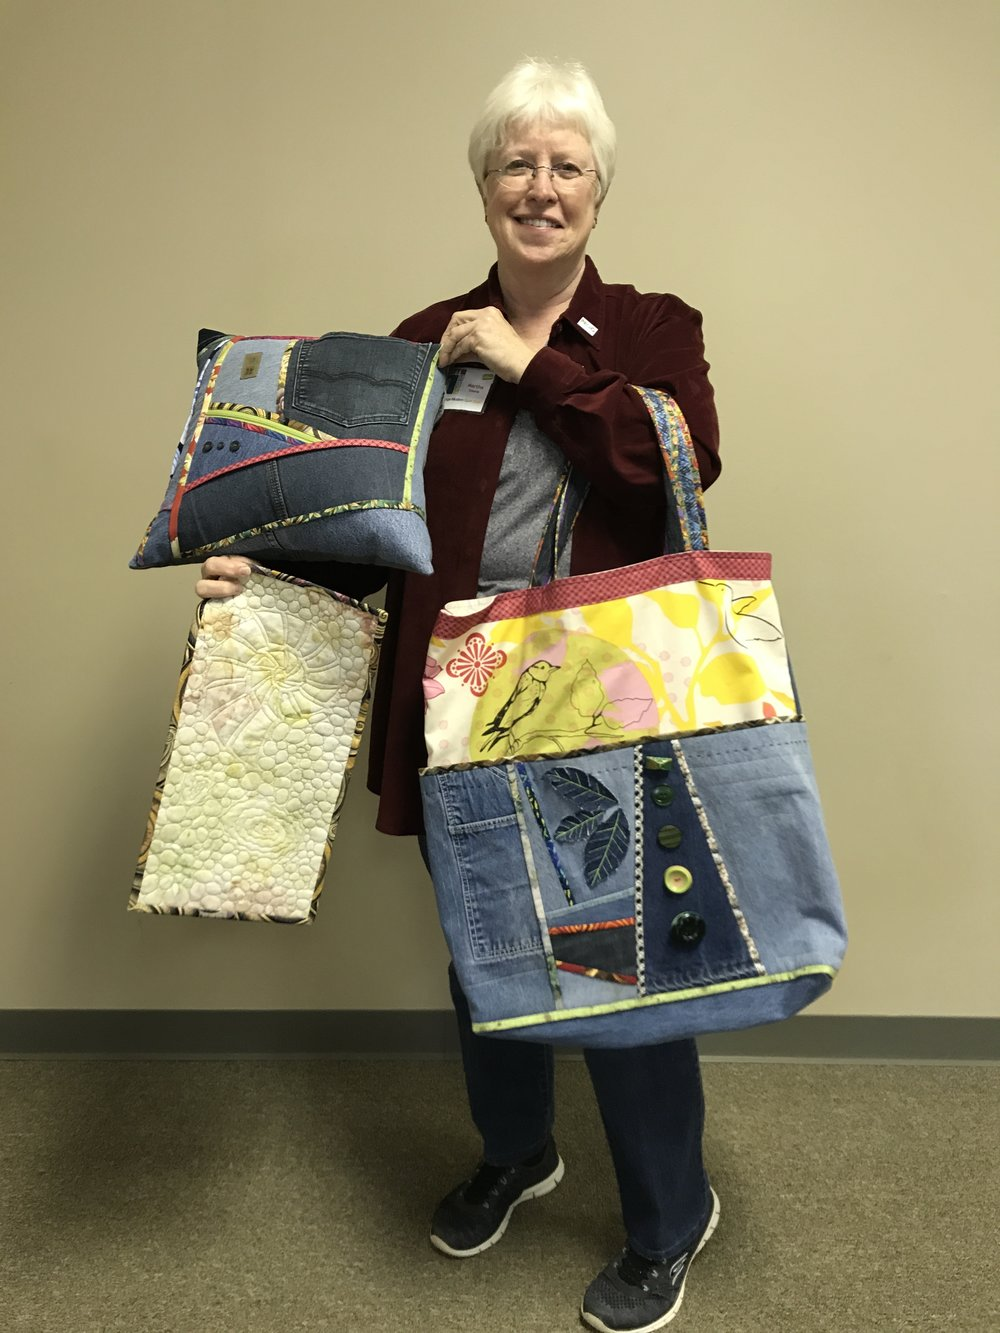 Martha S. has been busy making bags and pillows with denim